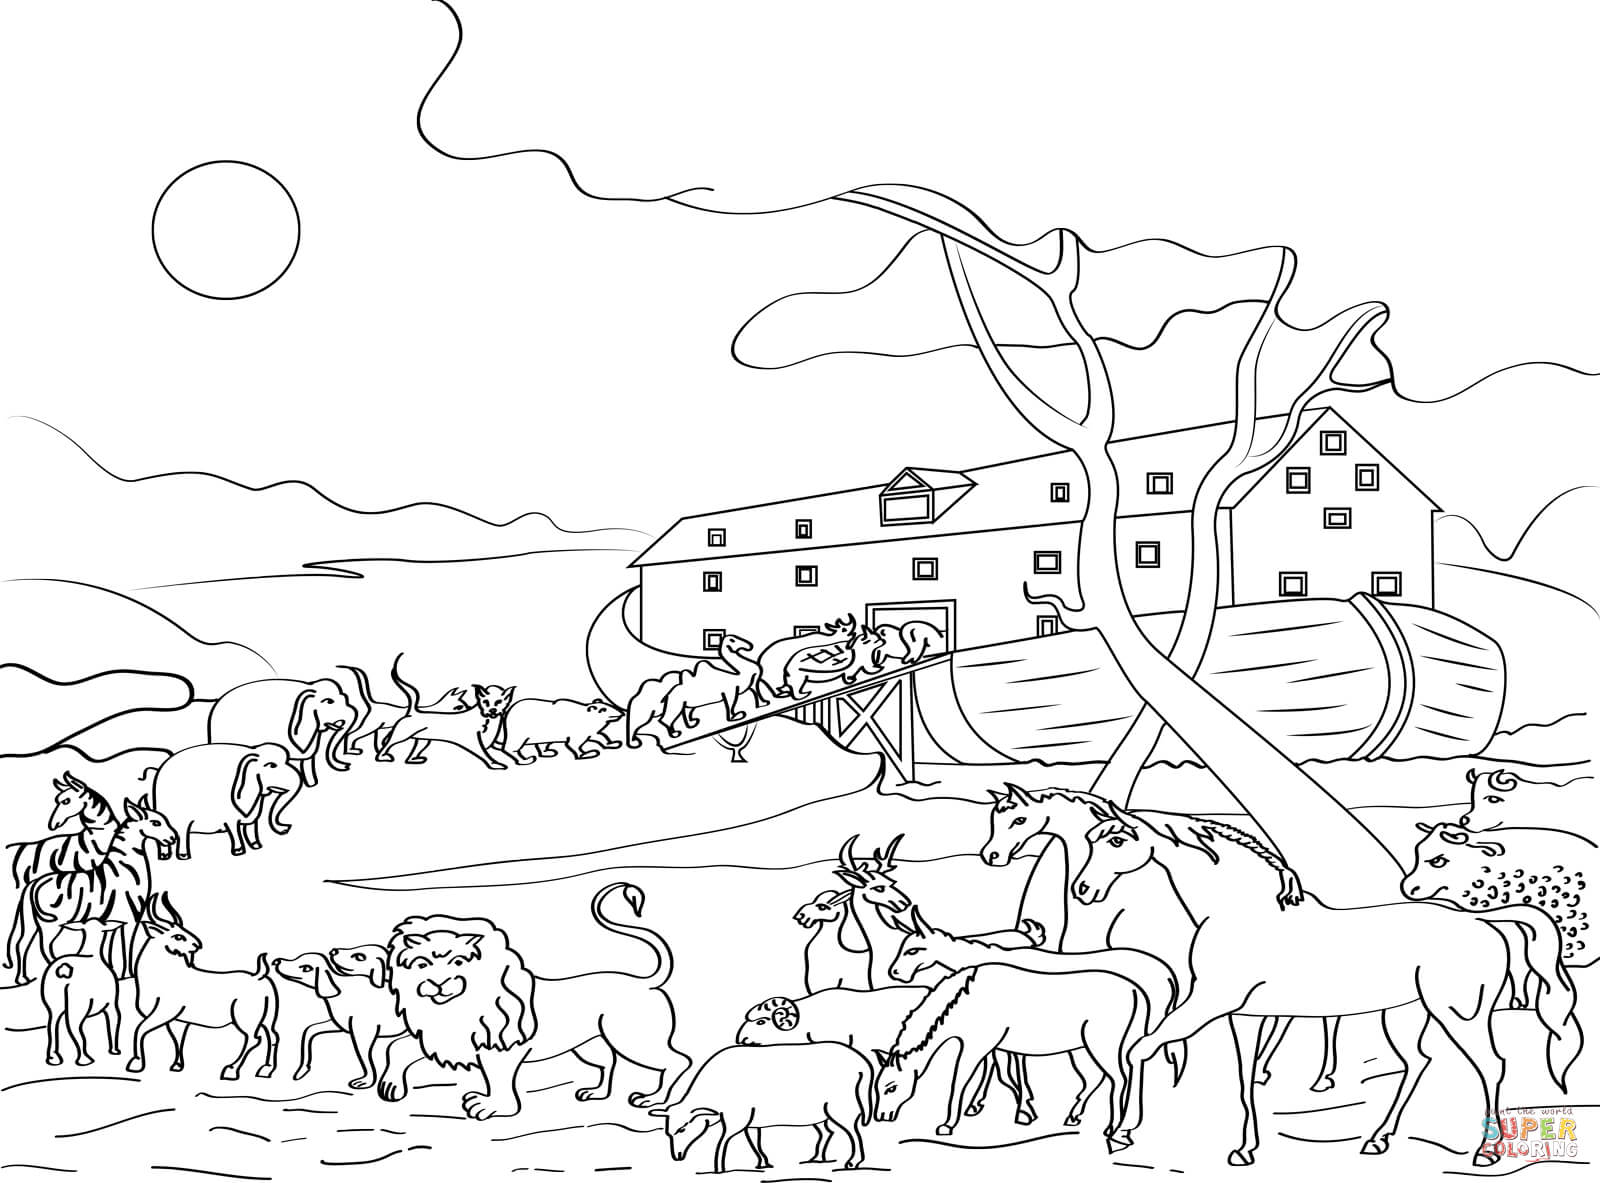 coloring page noahs ark noah ark coloring pages to download and print for free page ark noahs coloring